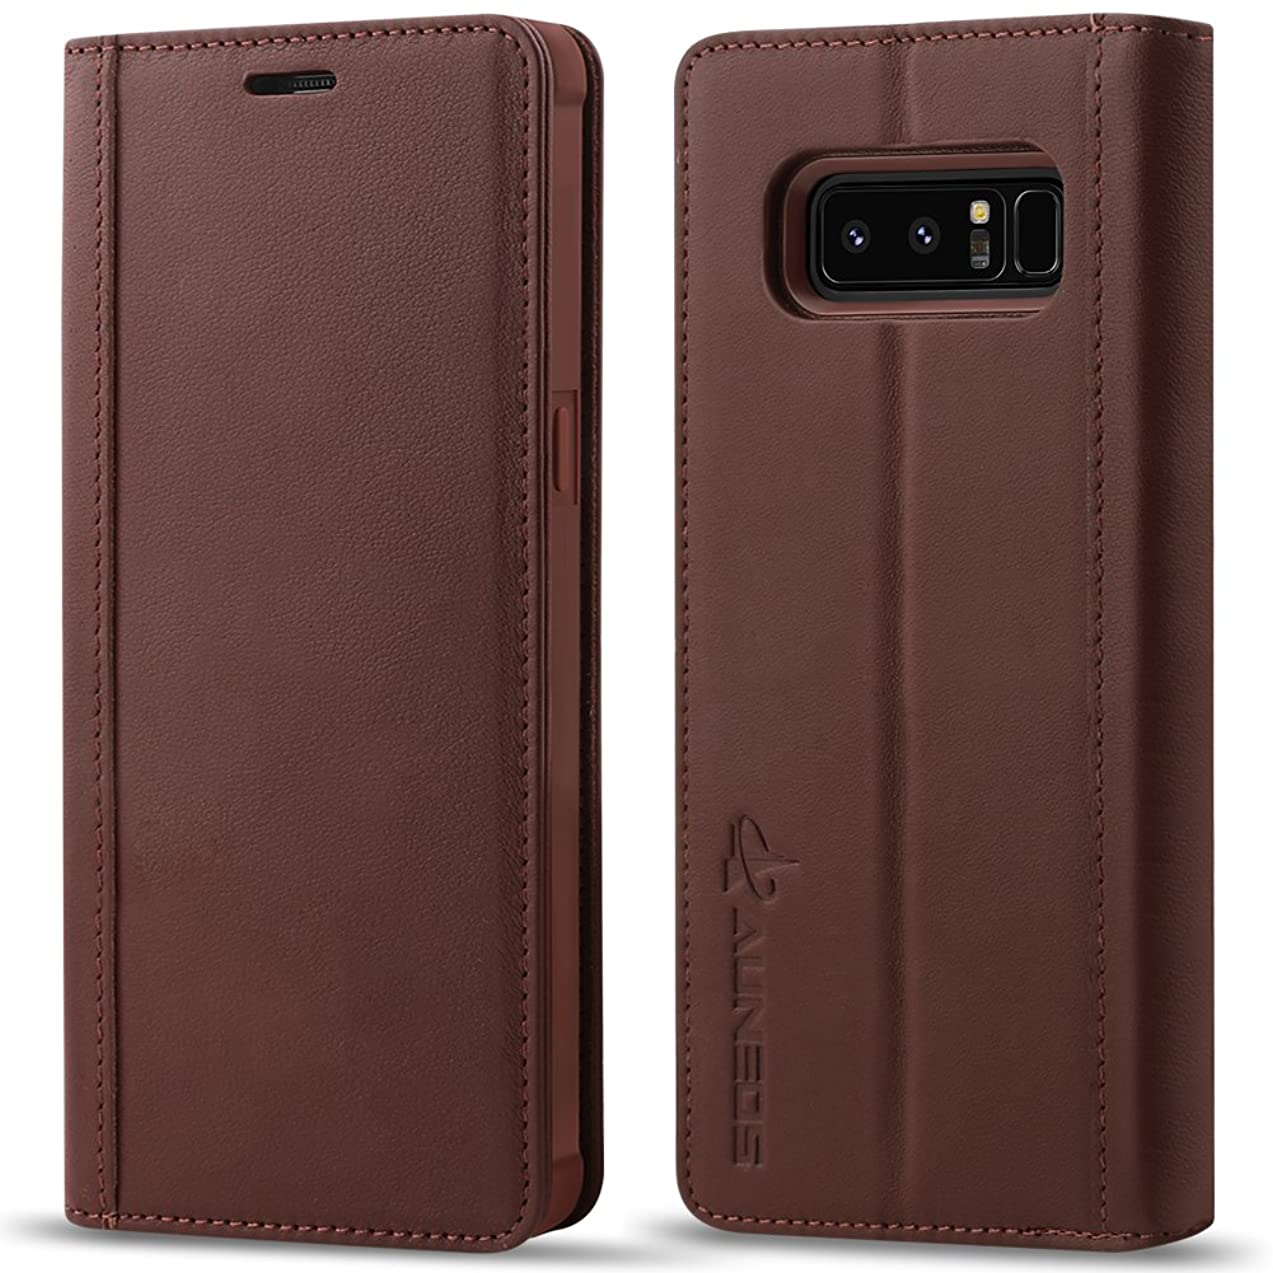 Case for Galaxy Note 8, AUNEOS Note 8 Wallet Case [Genuine Leather] [Shock Absorption ] Folio Flip Case Cover for Samsung Galaxy Note 8 (Brown)